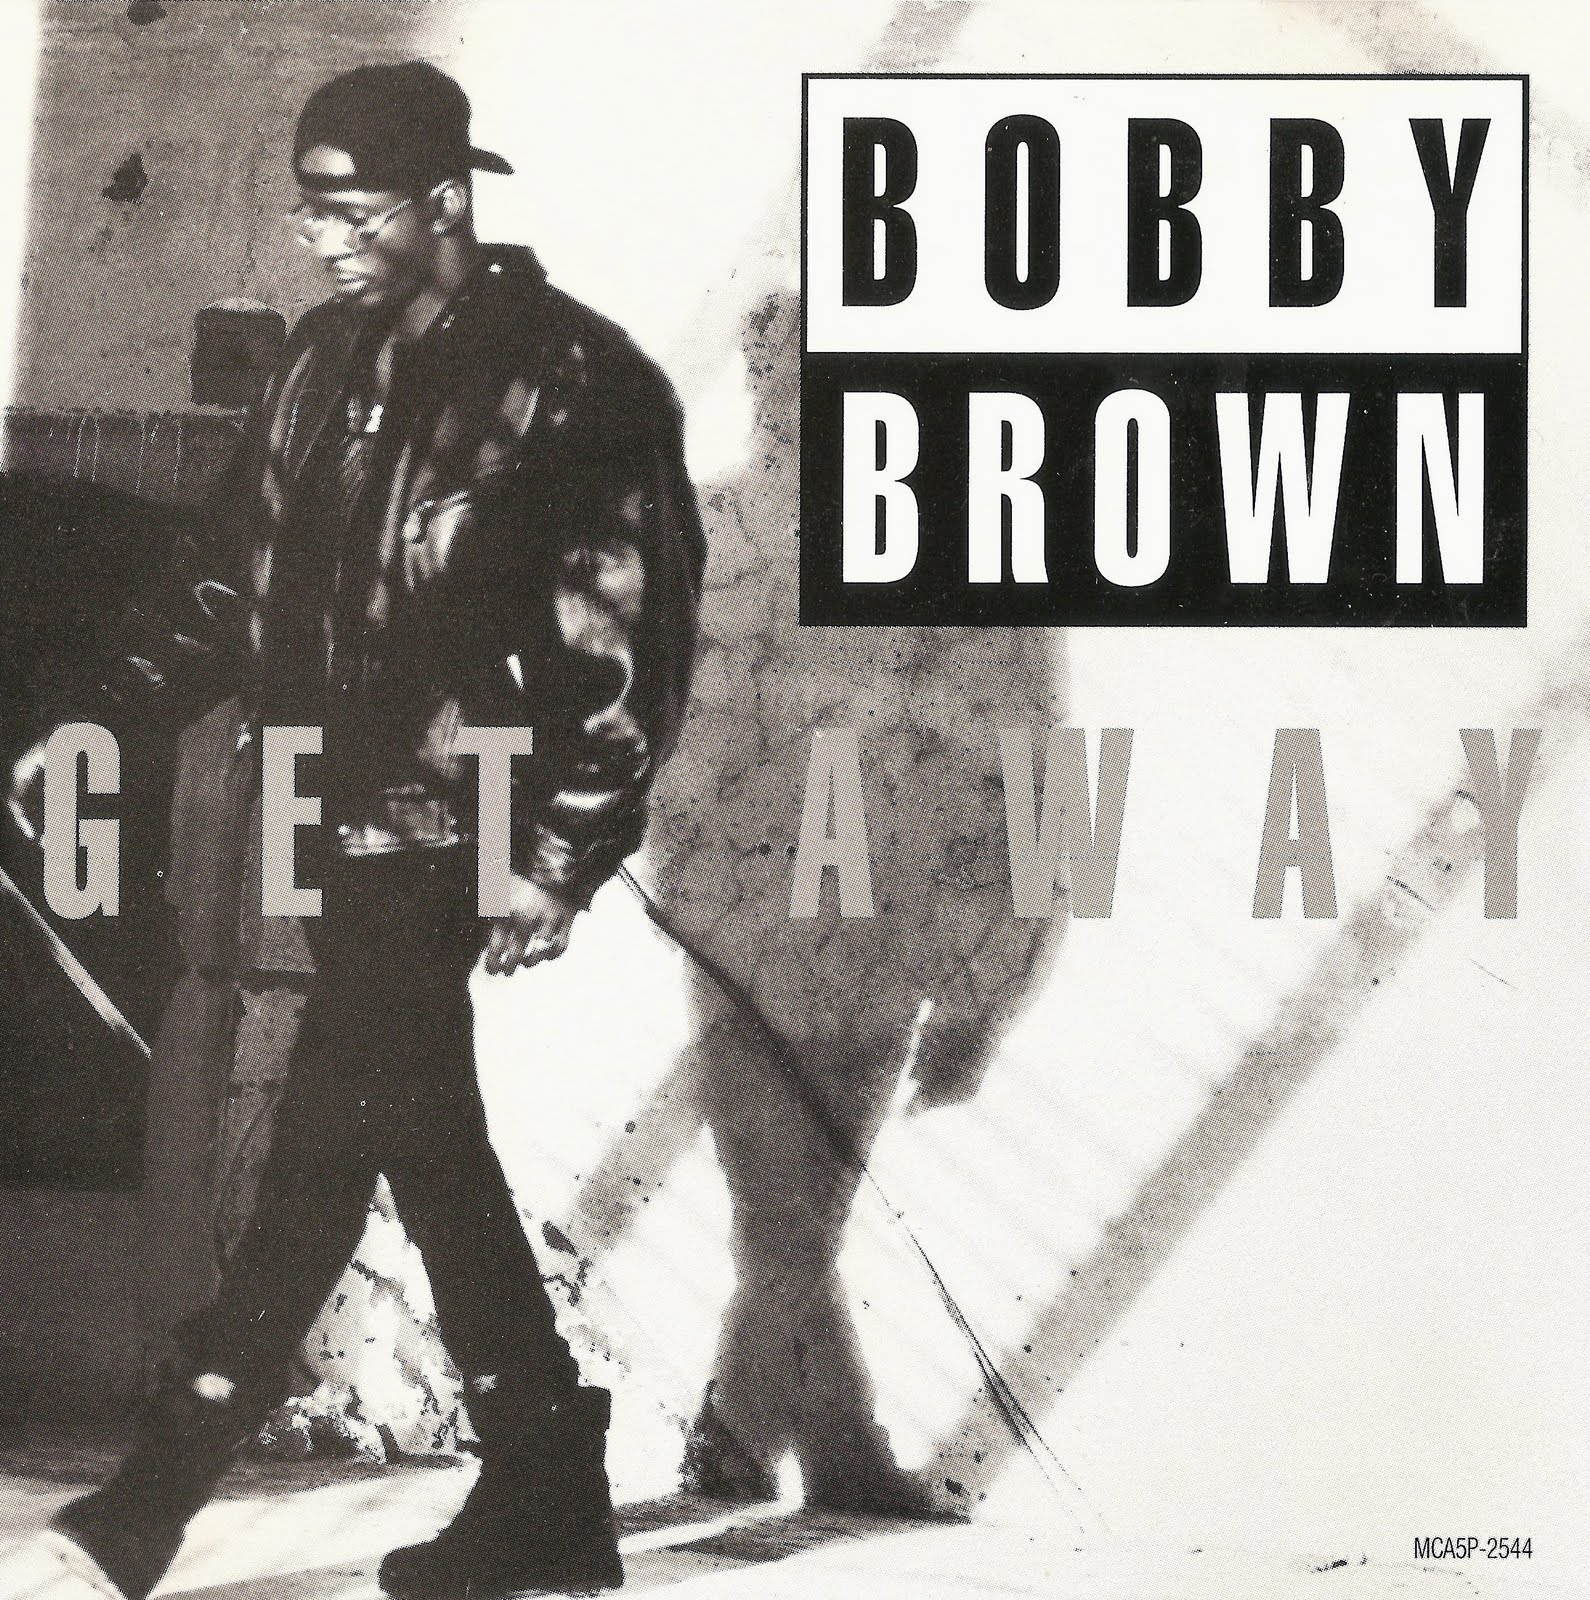 Bobby Brown Bobby Brown Bobby album cover william hill financial results williamhill premier league winner 1992